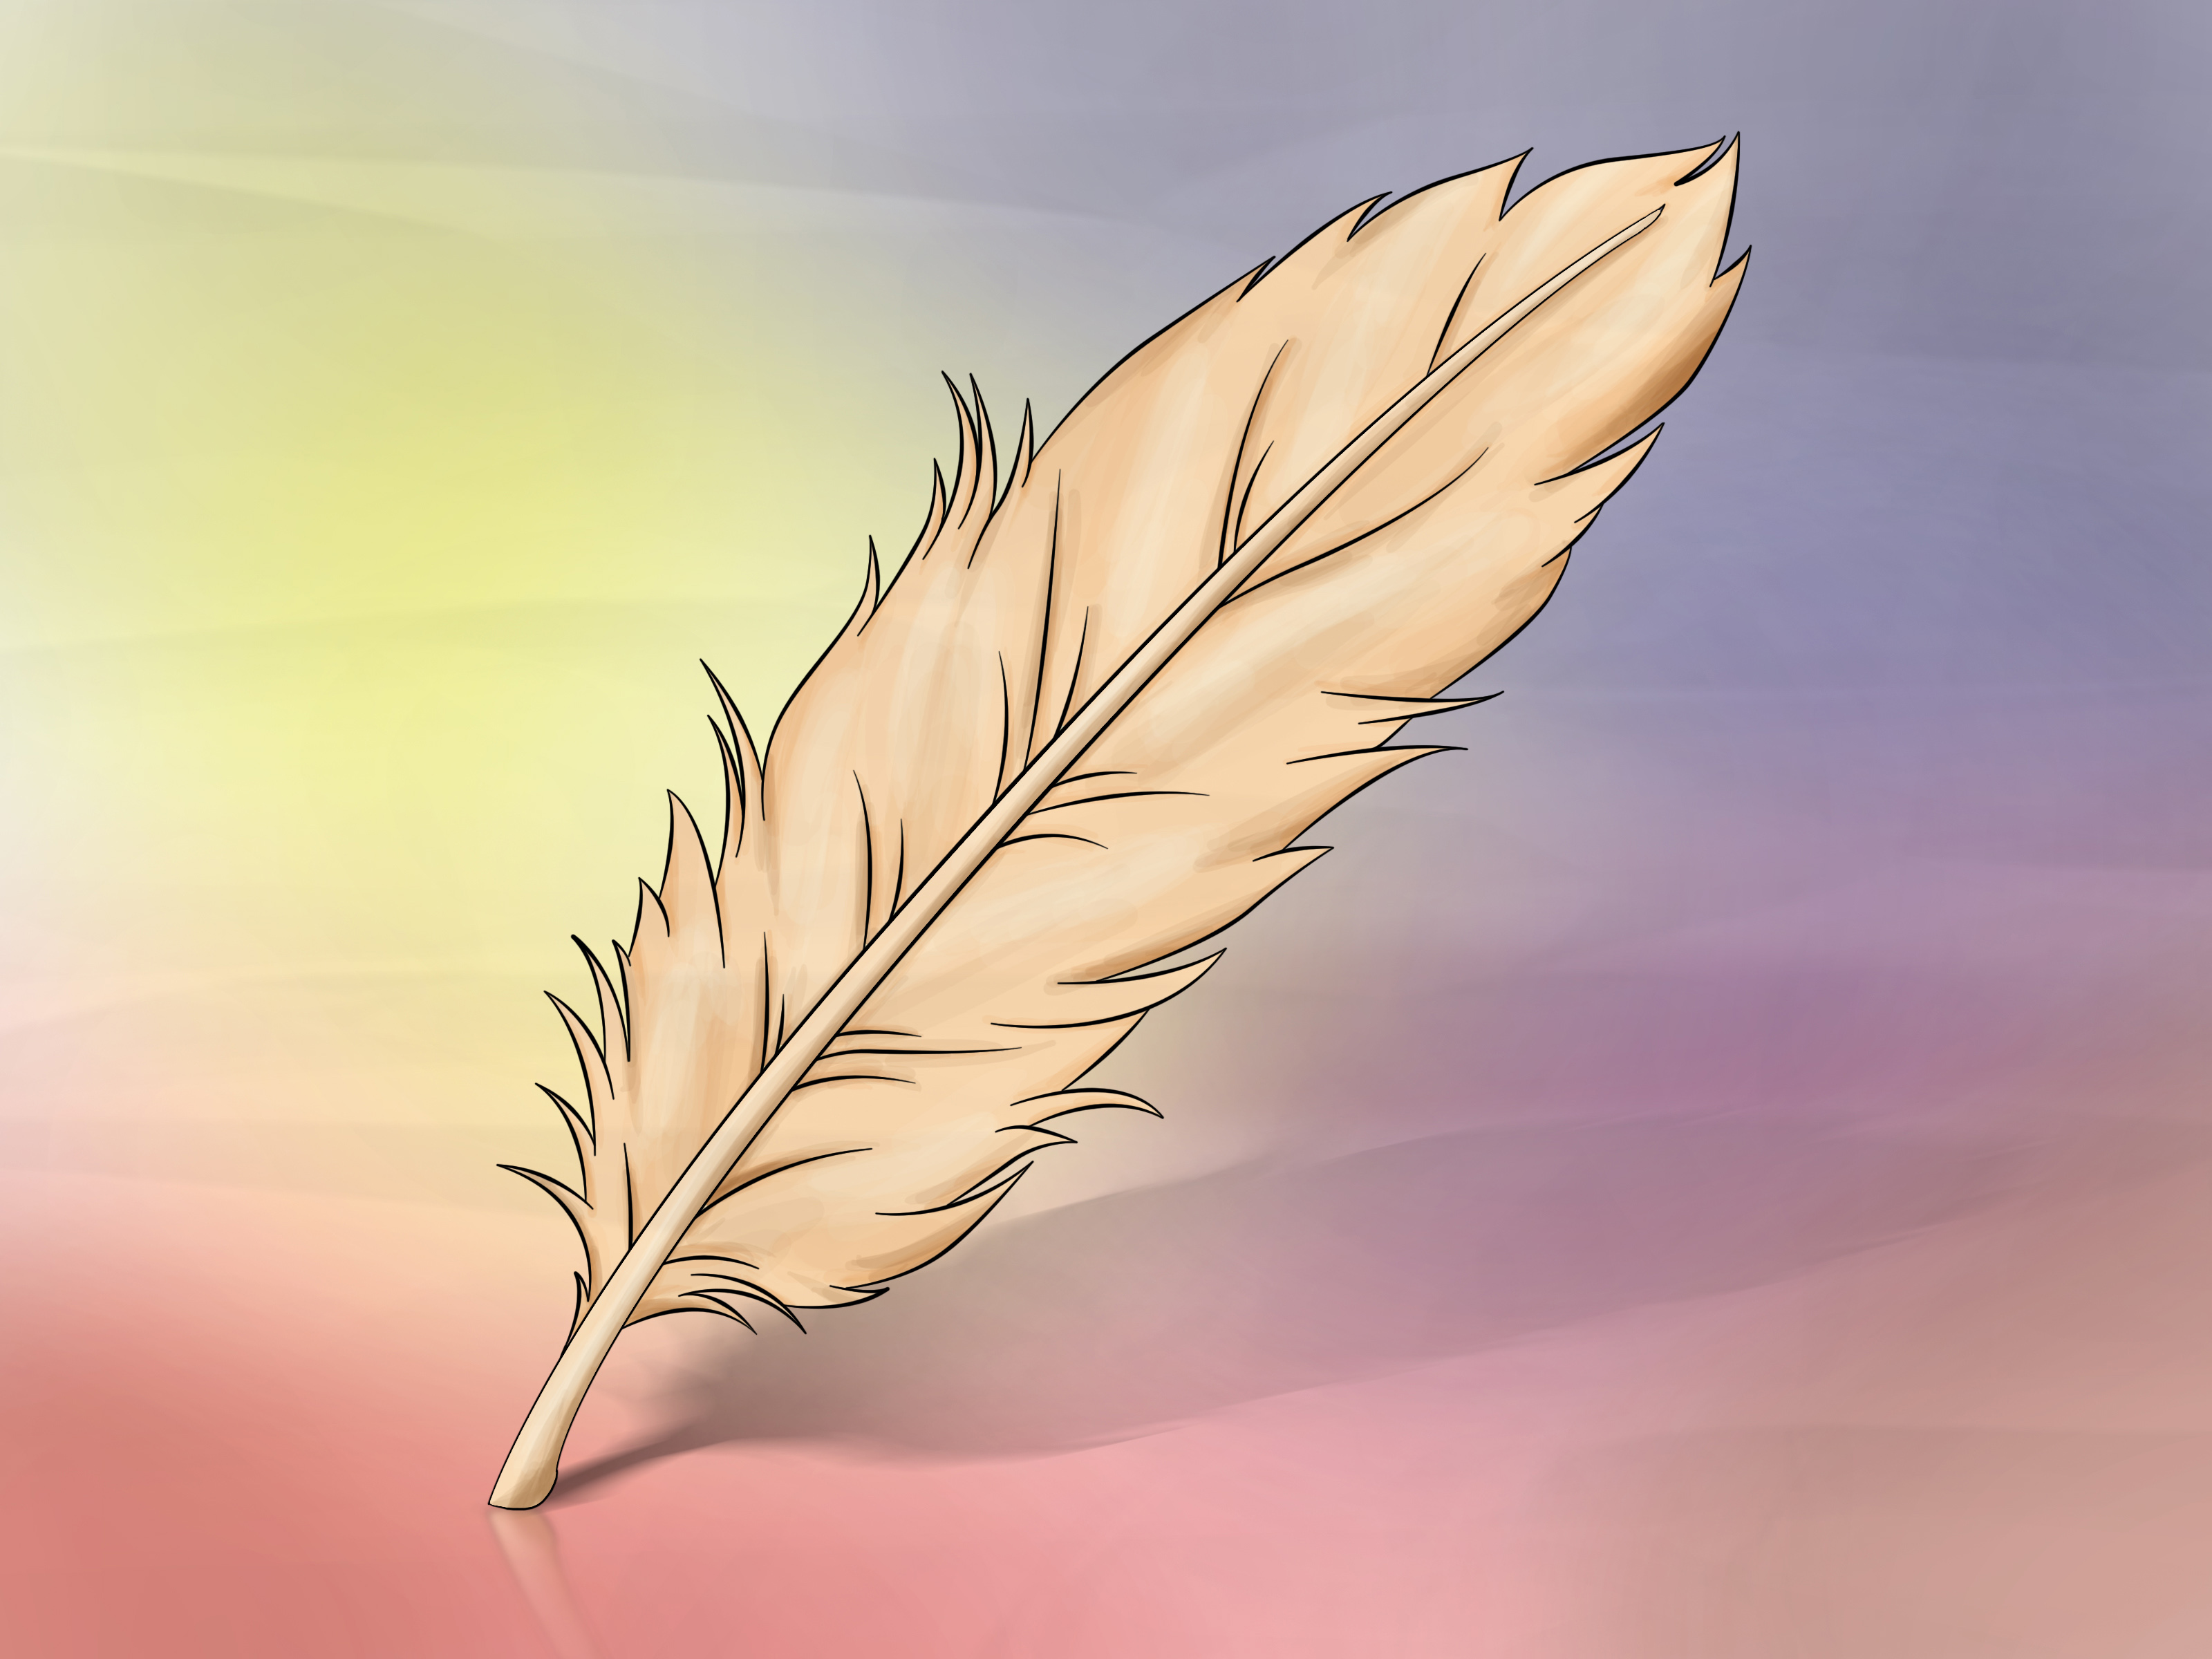 Drawn feather #13